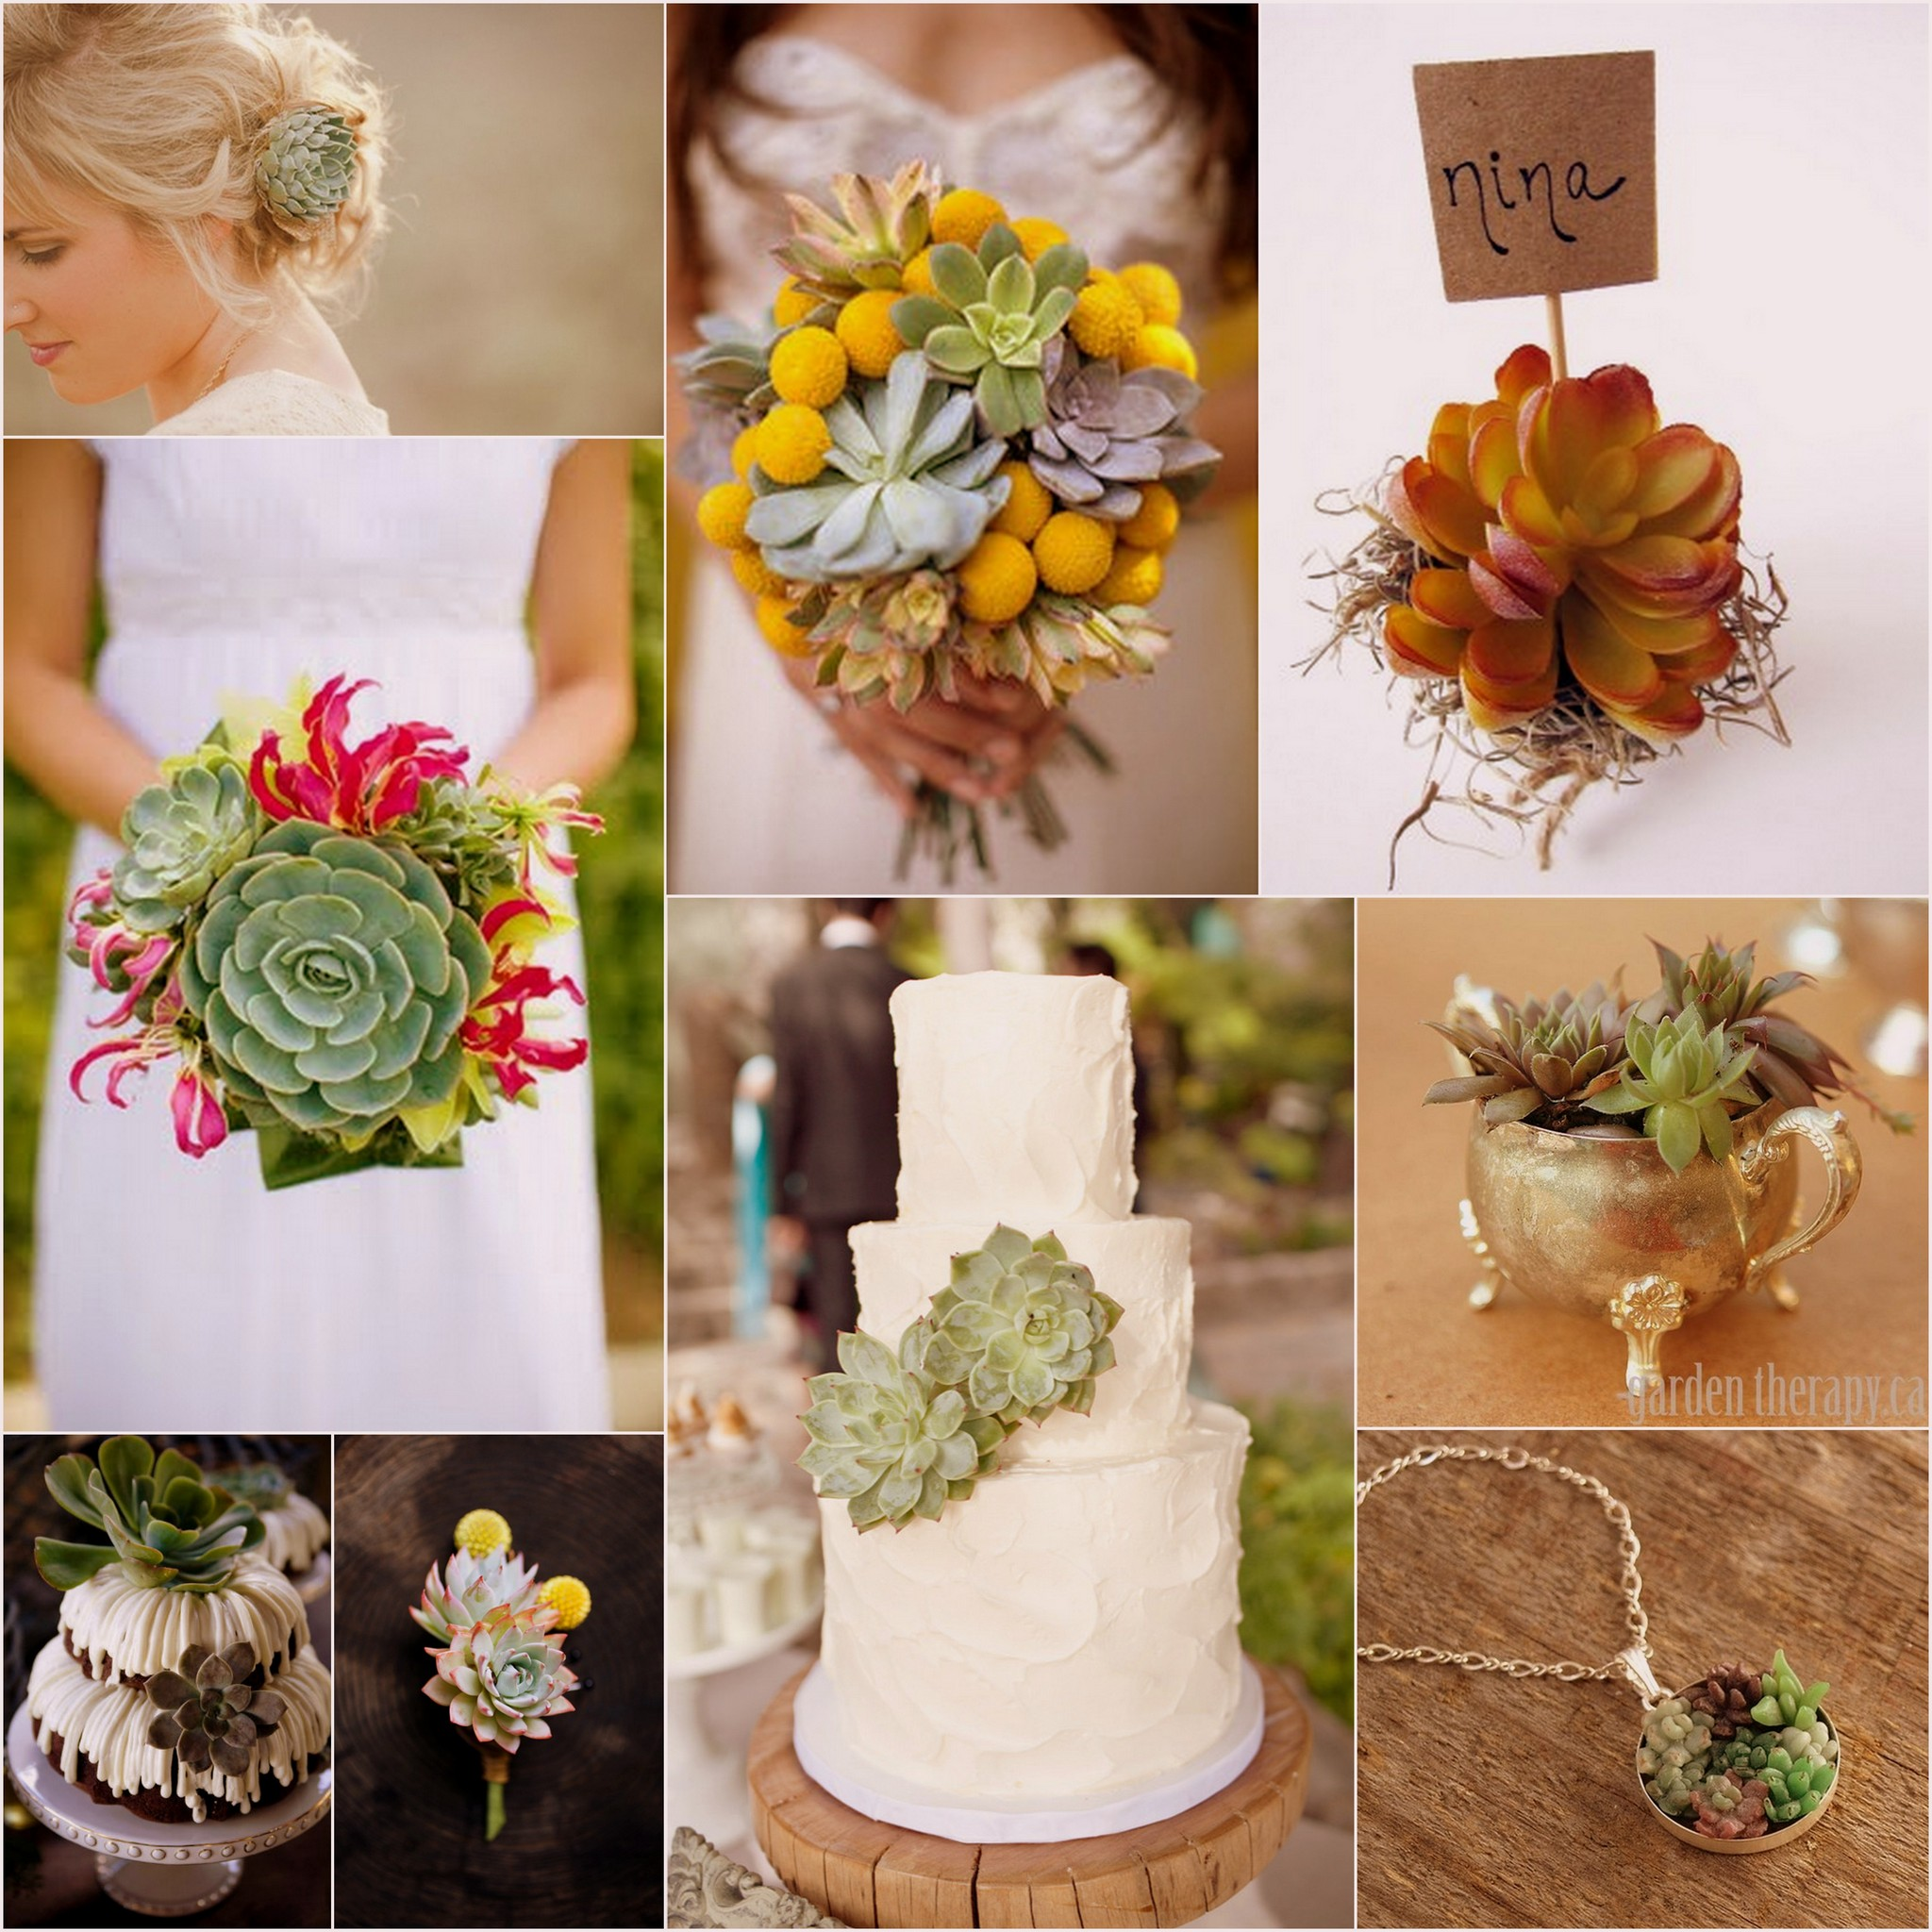 Wedding Theme Ideas: Succulent Wedding Theme Ideas: Bouquets, Decor & Favors